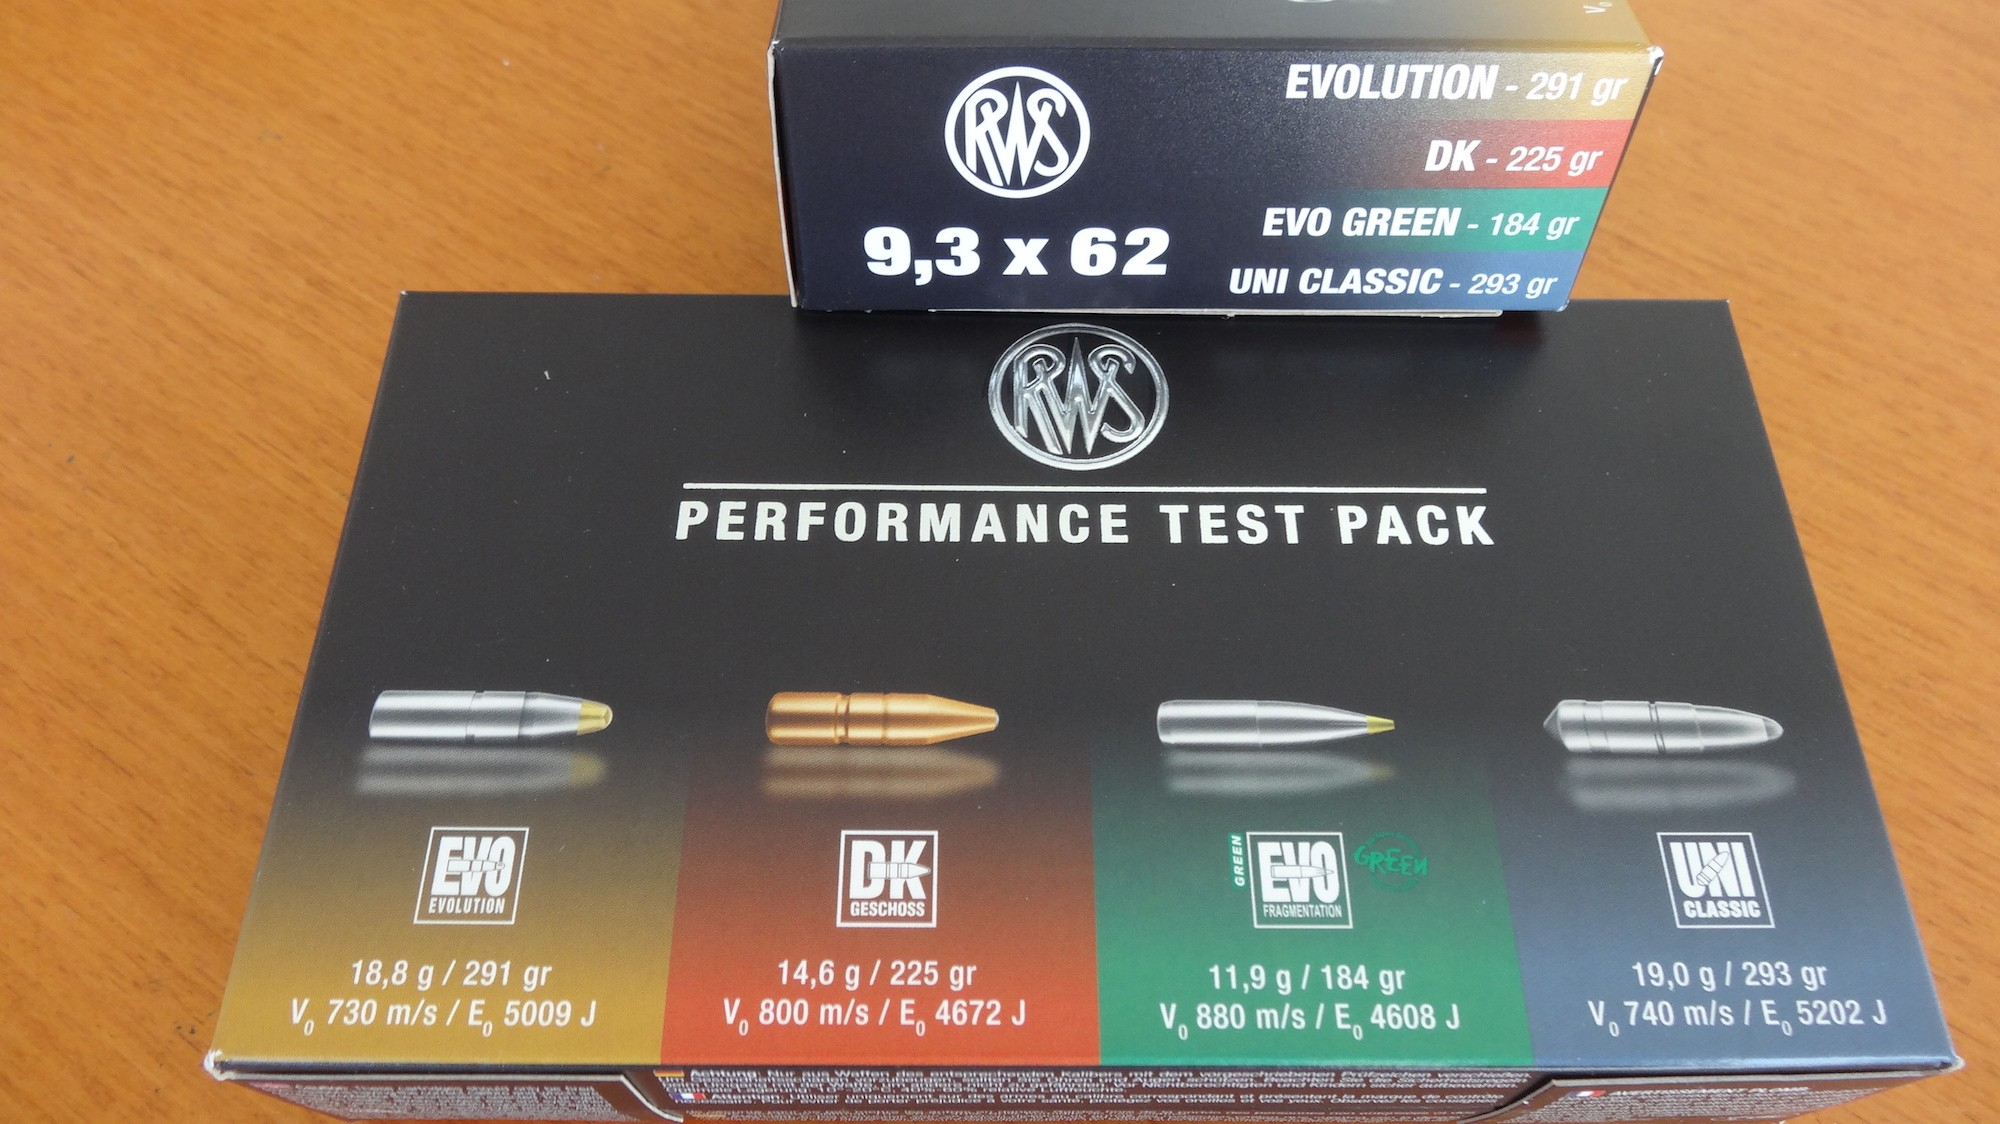 RWS Performance Test Pack Cal. 9,3x62